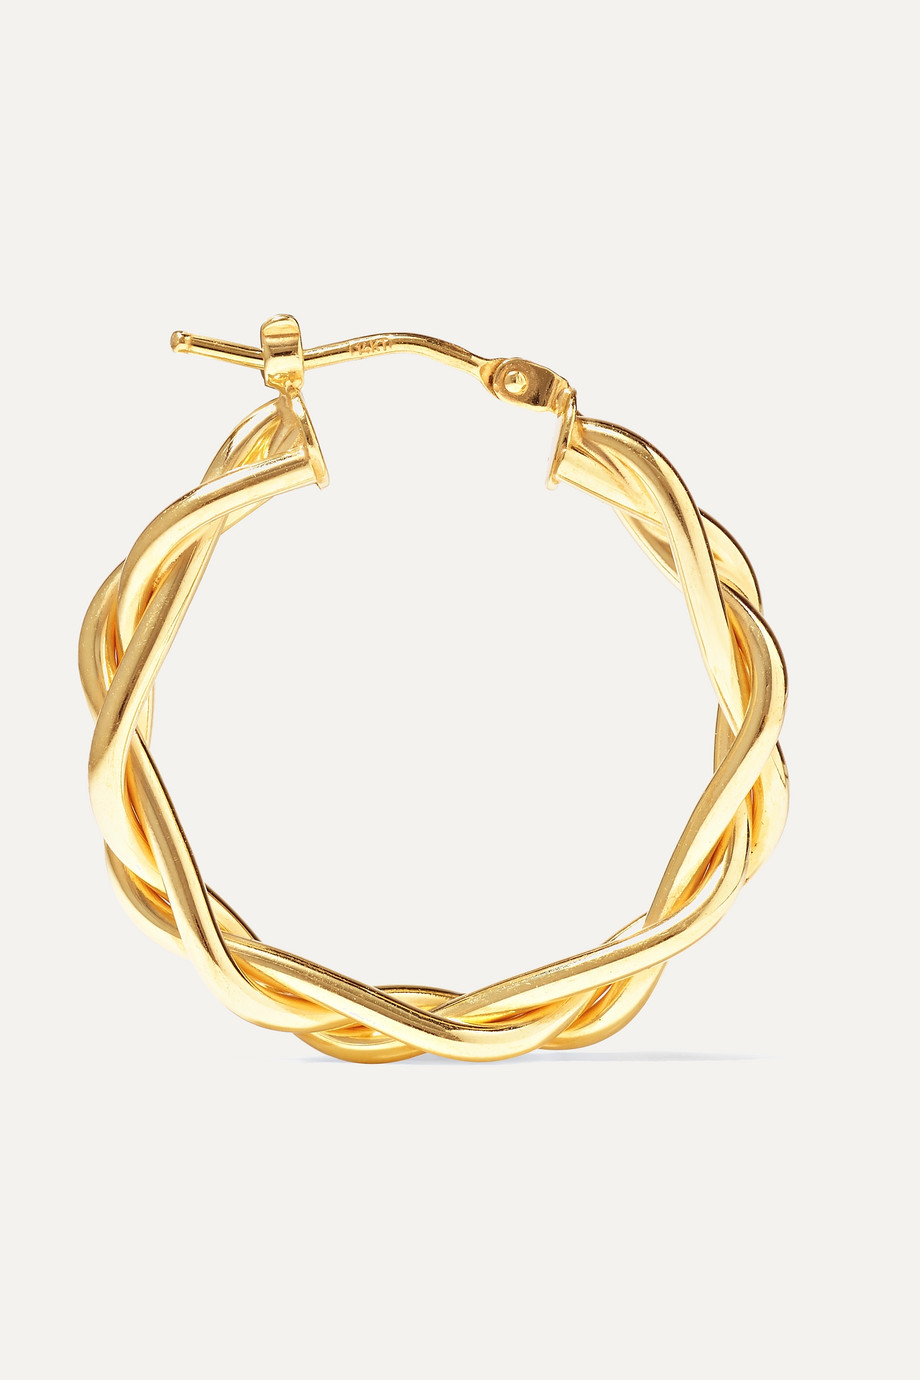 Loren Stewart + NET SUSTAIN 14-karat gold hoop earrings